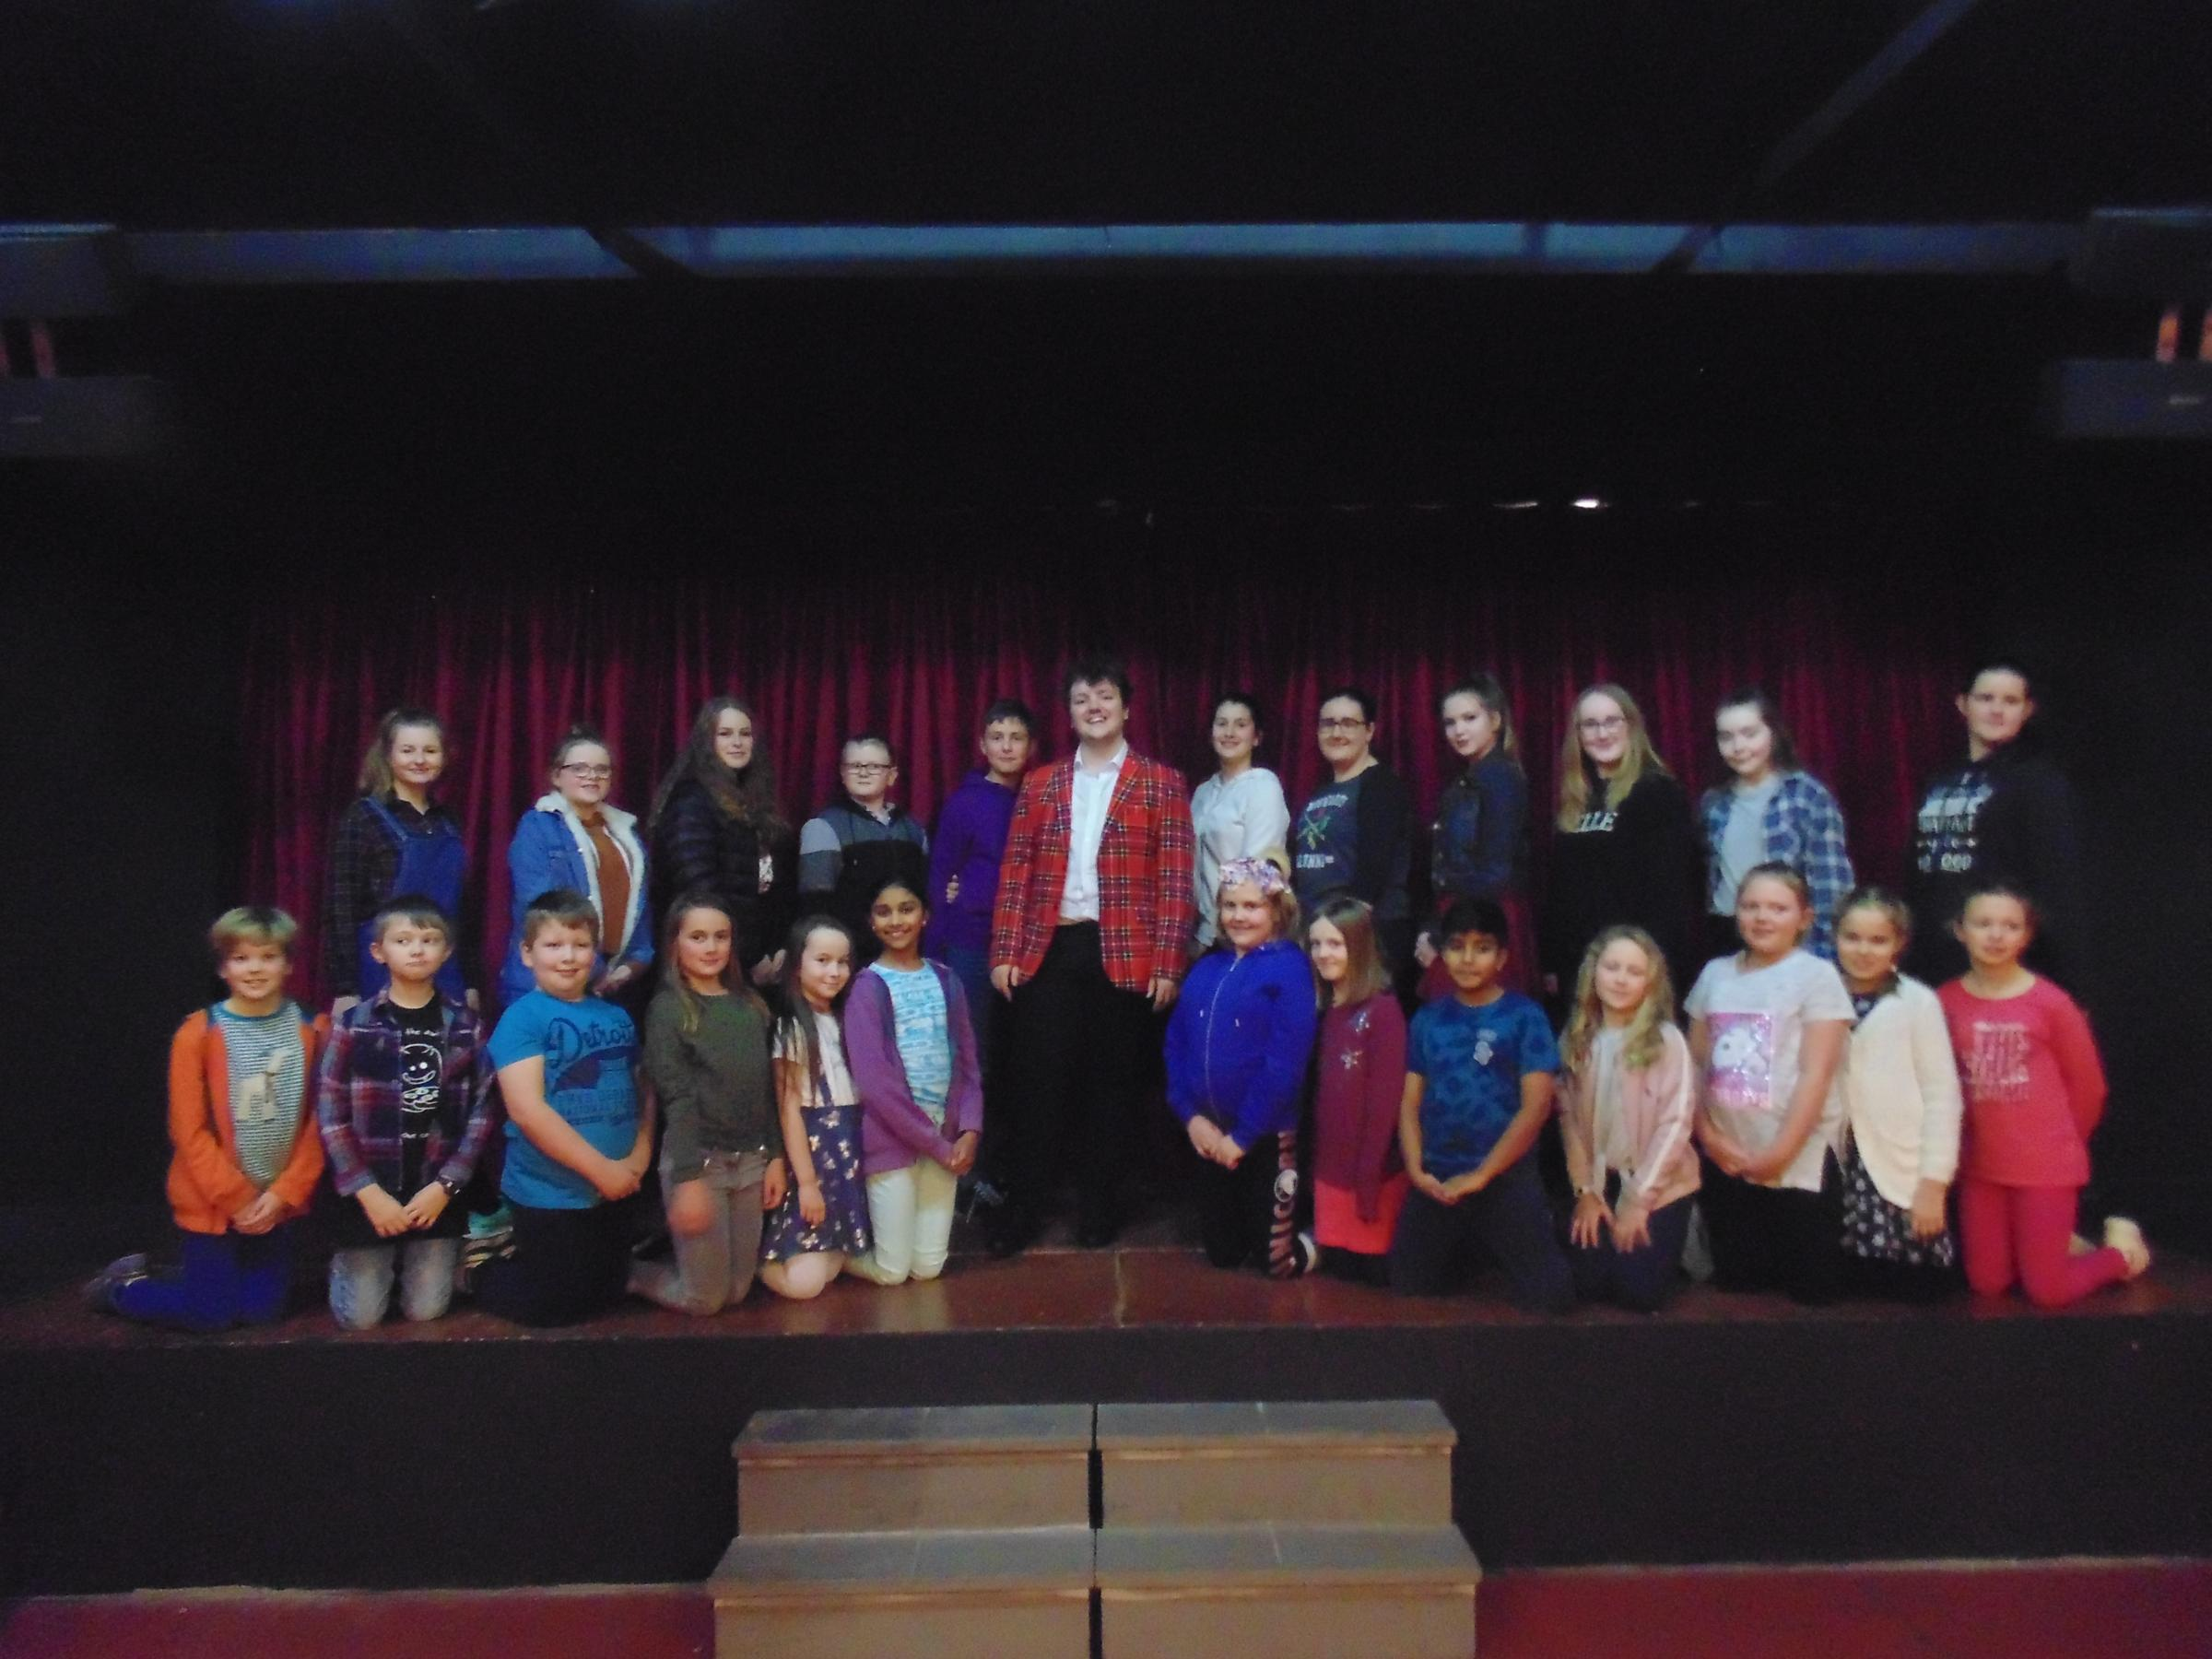 The local talent visited the Truro Amateur Operatic and Dramatic Society Youth Theatre to sign autographs and chat with budding young performers.